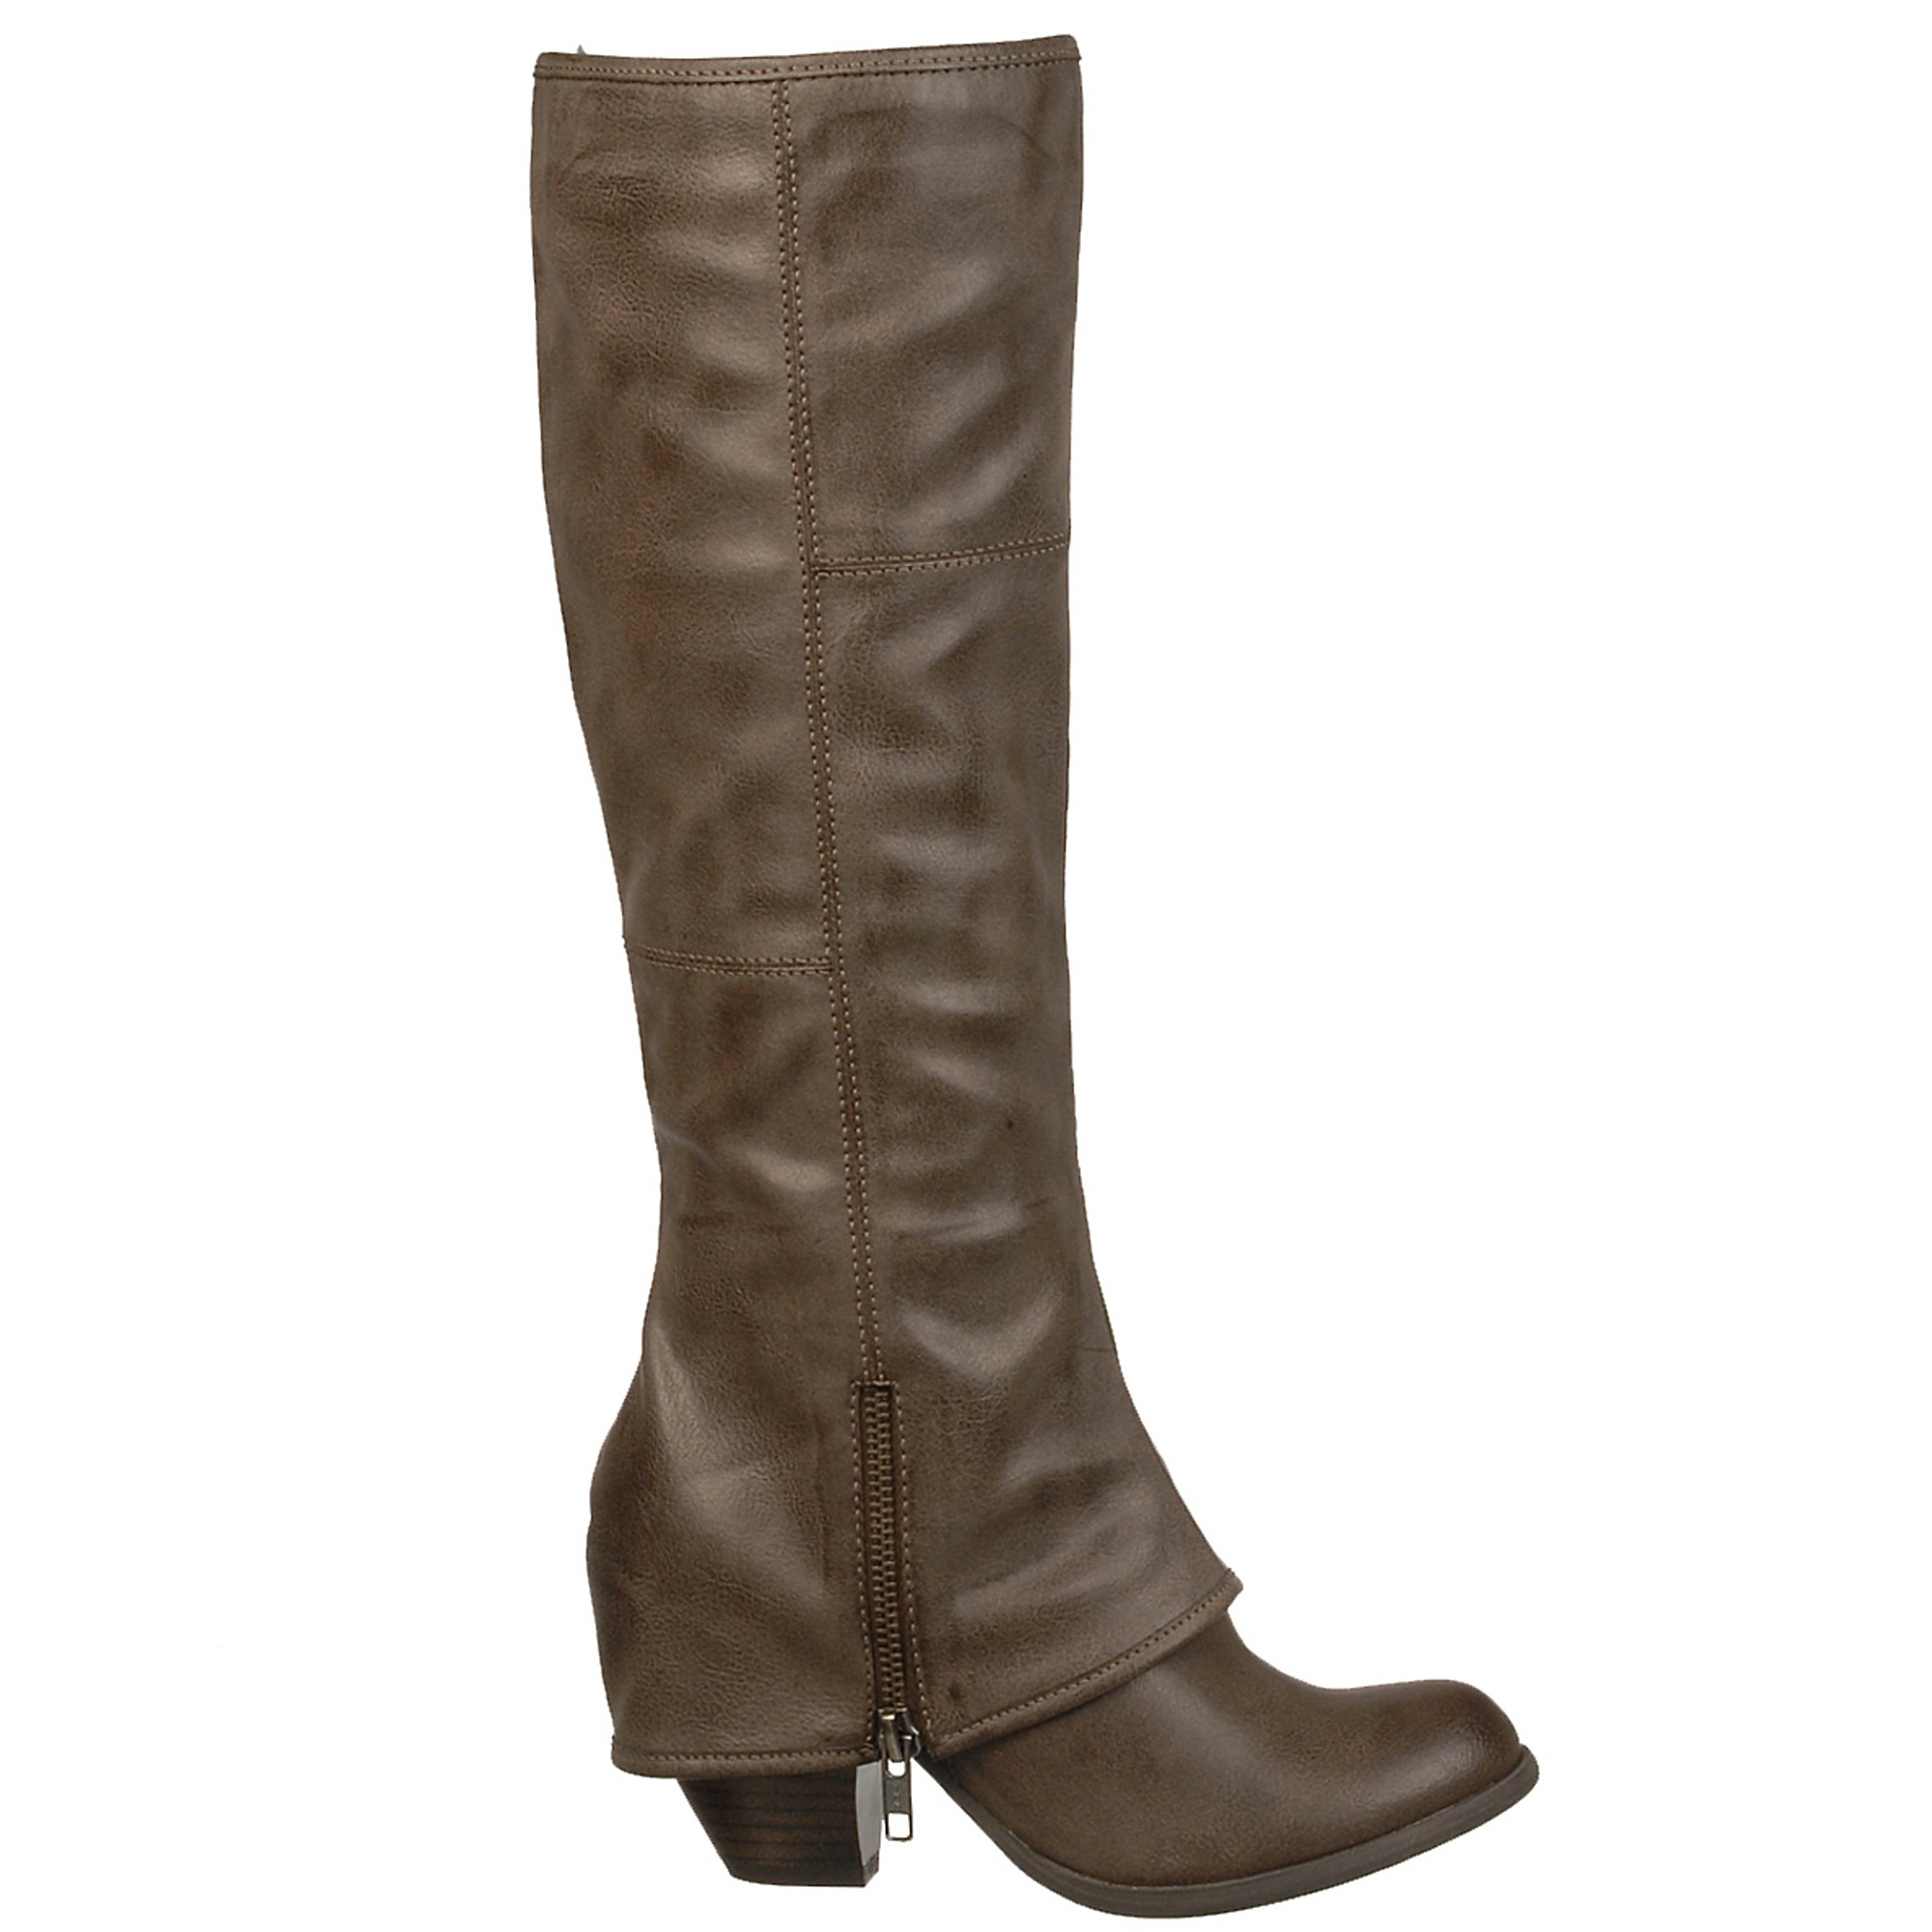 Fergalicious Shoes L Ryder Tall Boots